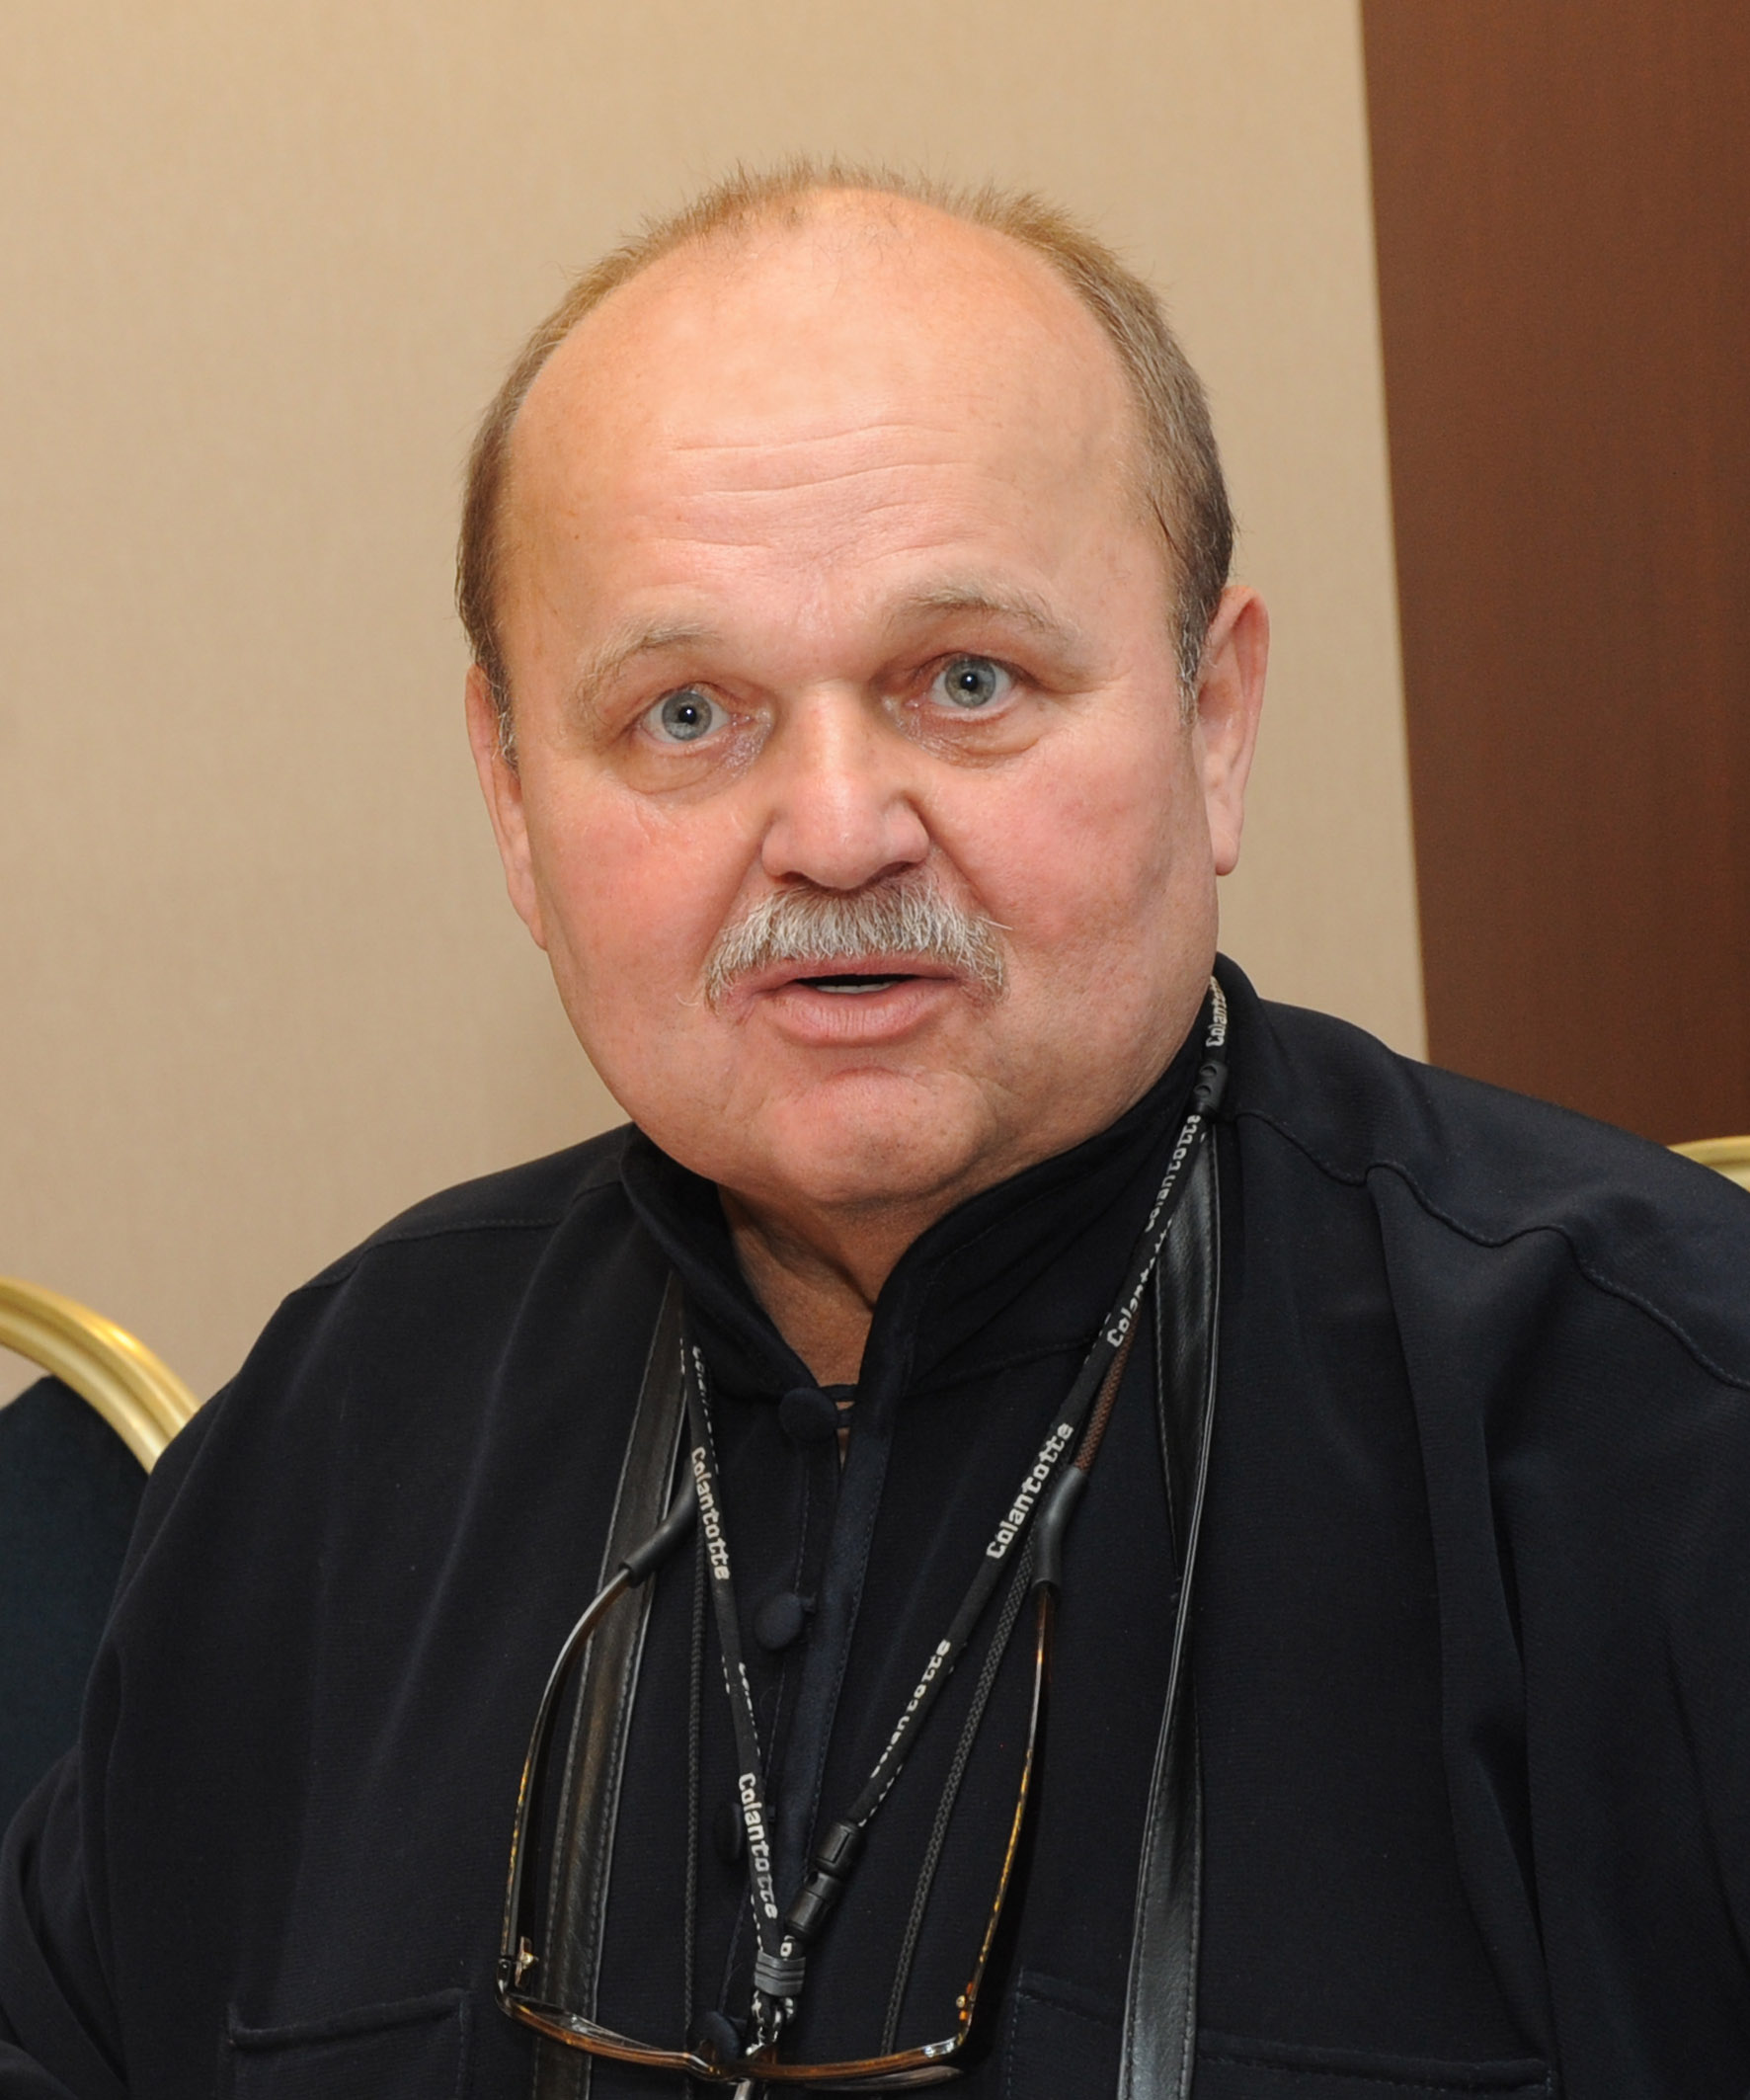 Jozef Bednárik (photo by Peter Procházka)